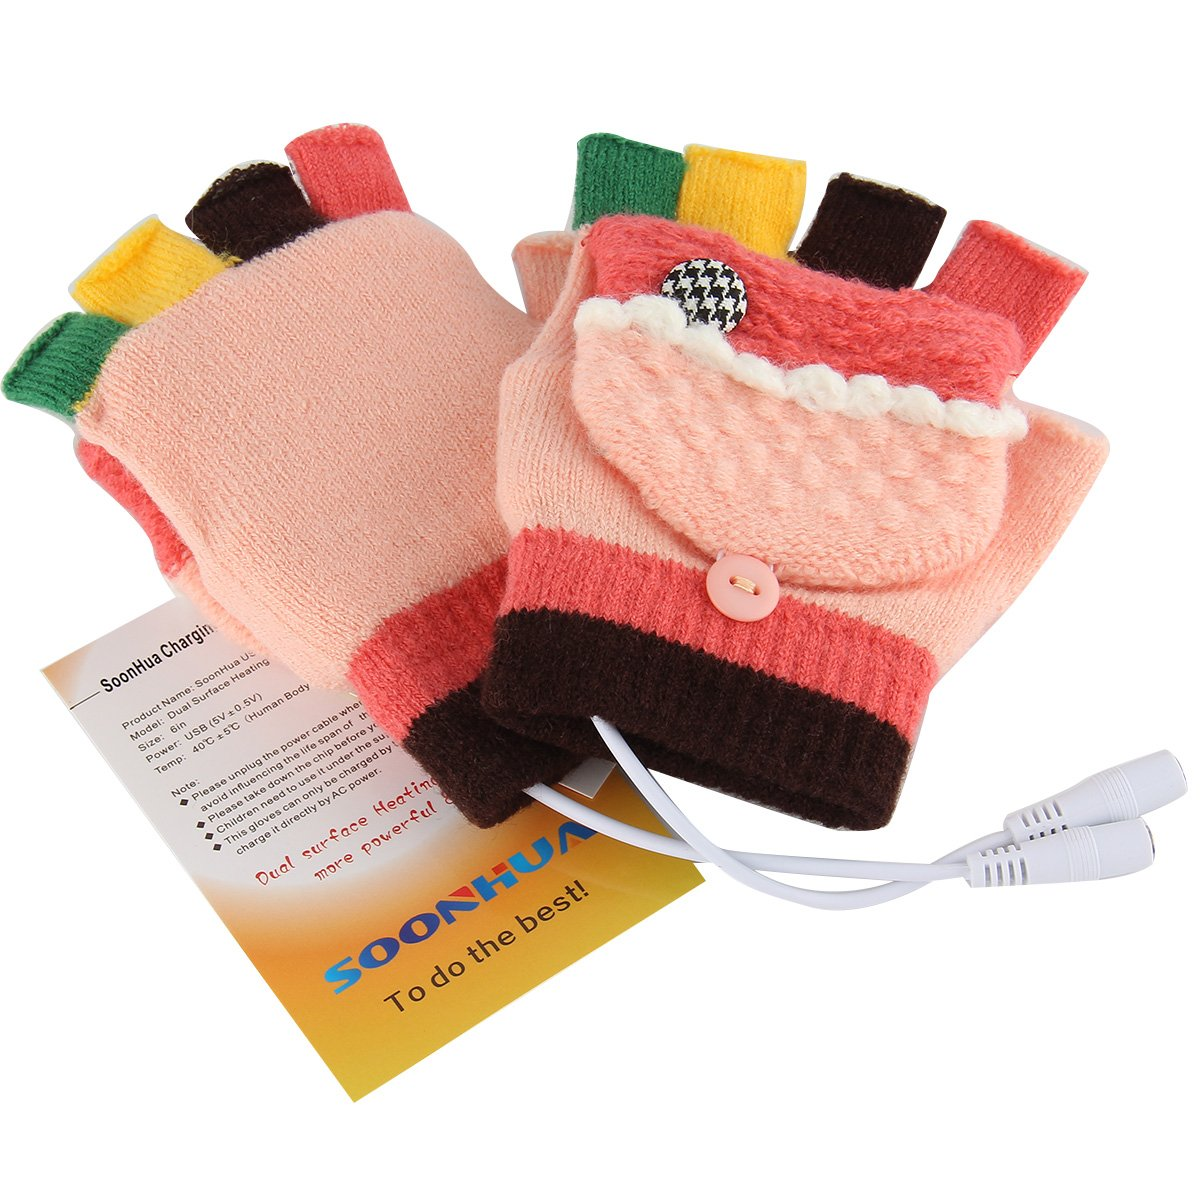 Amazon.com: USB Warm Gloves Oenbopo Women's PC Laptop USB Heated Half &  Full Finger Winter Warm Hand Gloves Warmer Wool (GS51): Computers &  Accessories